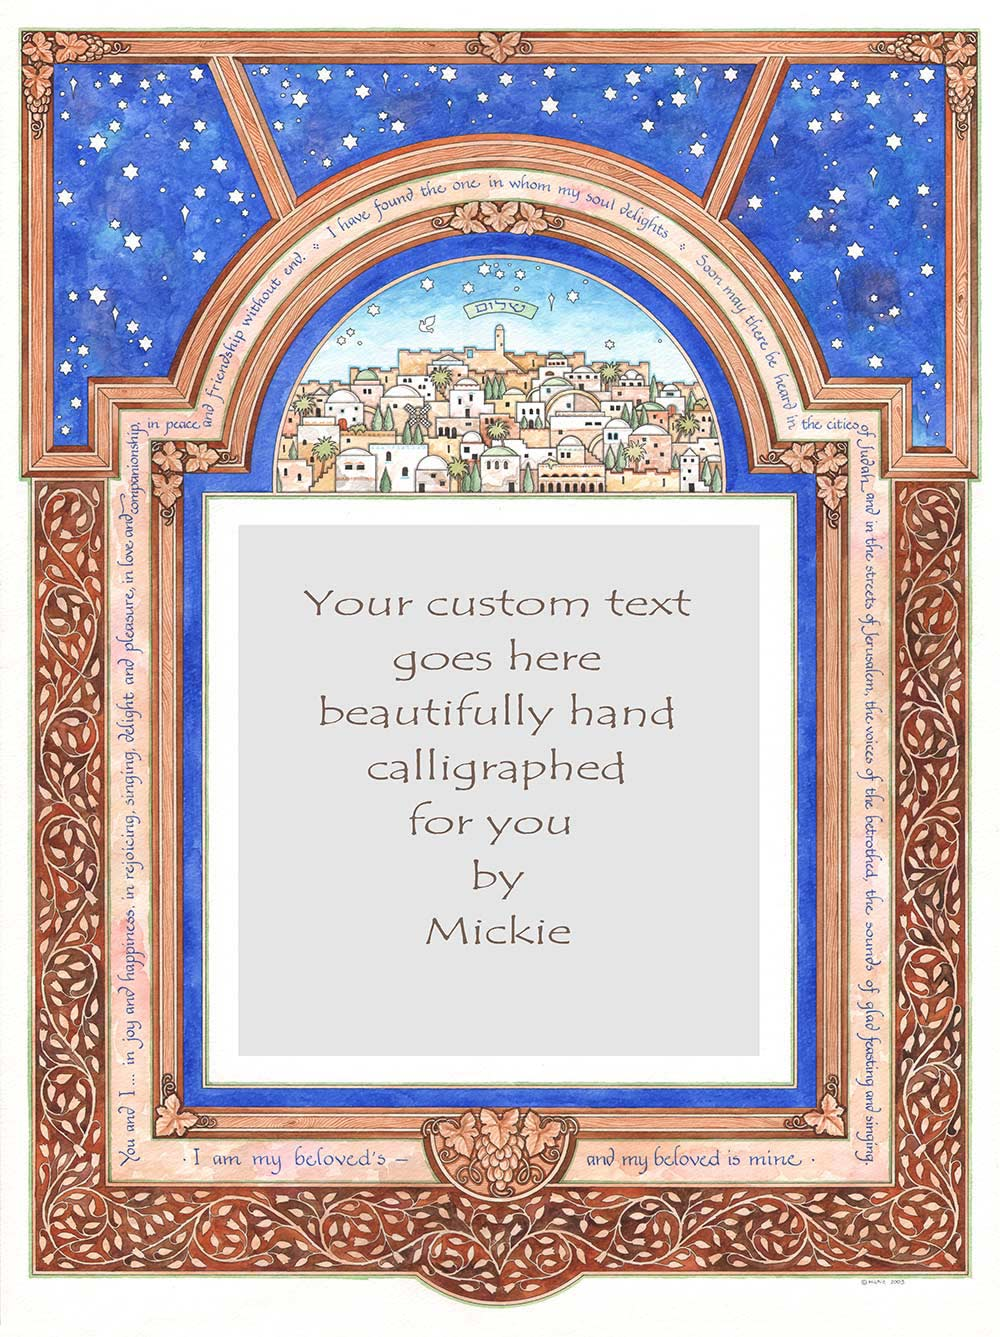 Seven Blessings Original Ketubah by Mickie Caspi